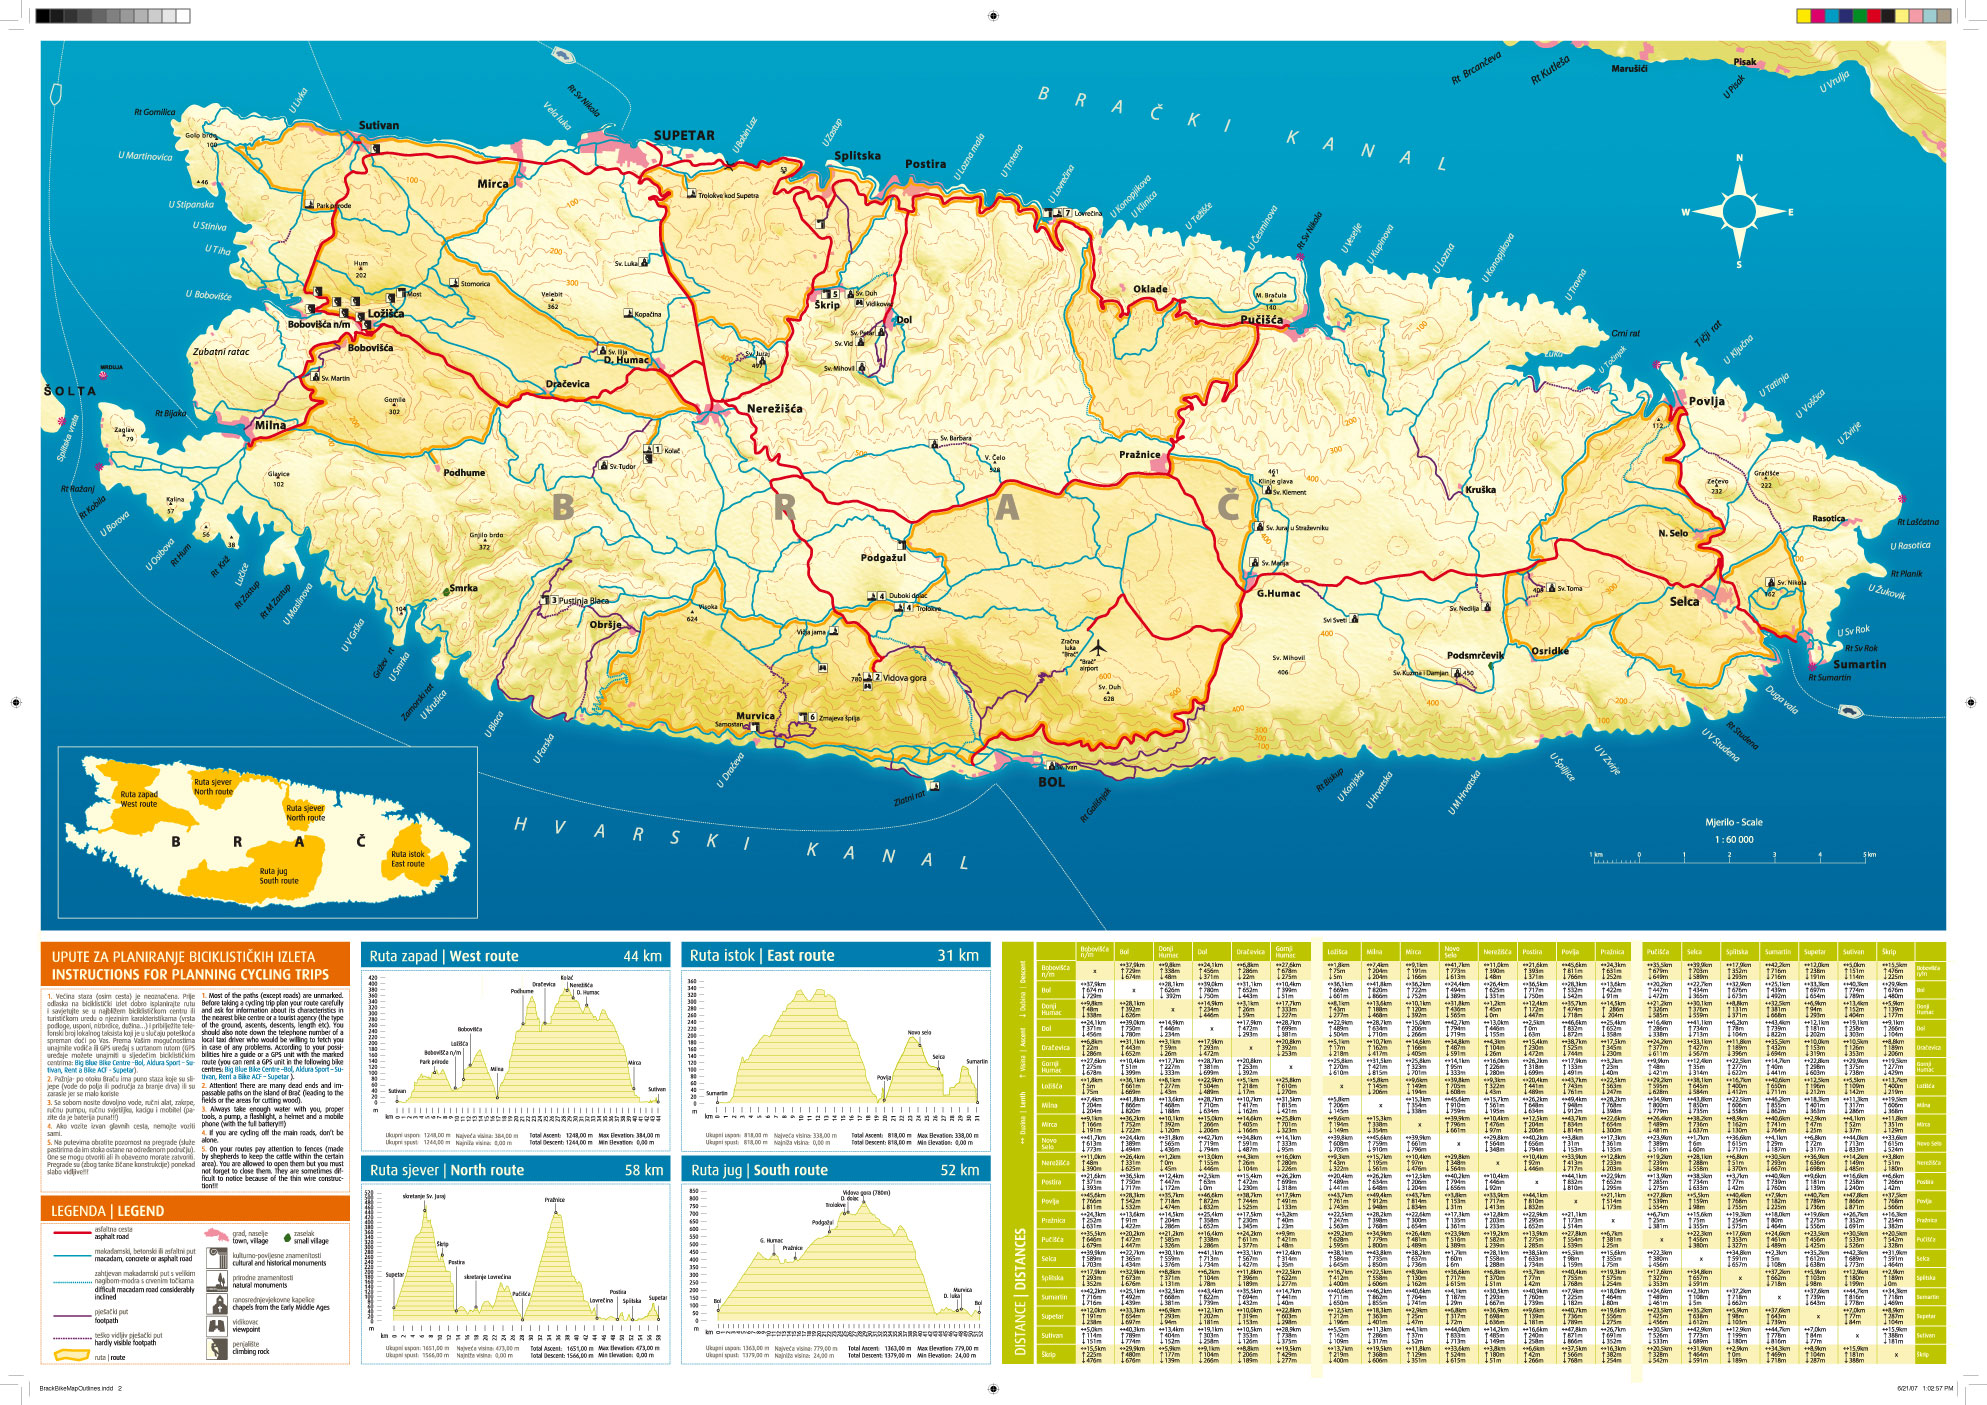 Bike map island Brac Croatia